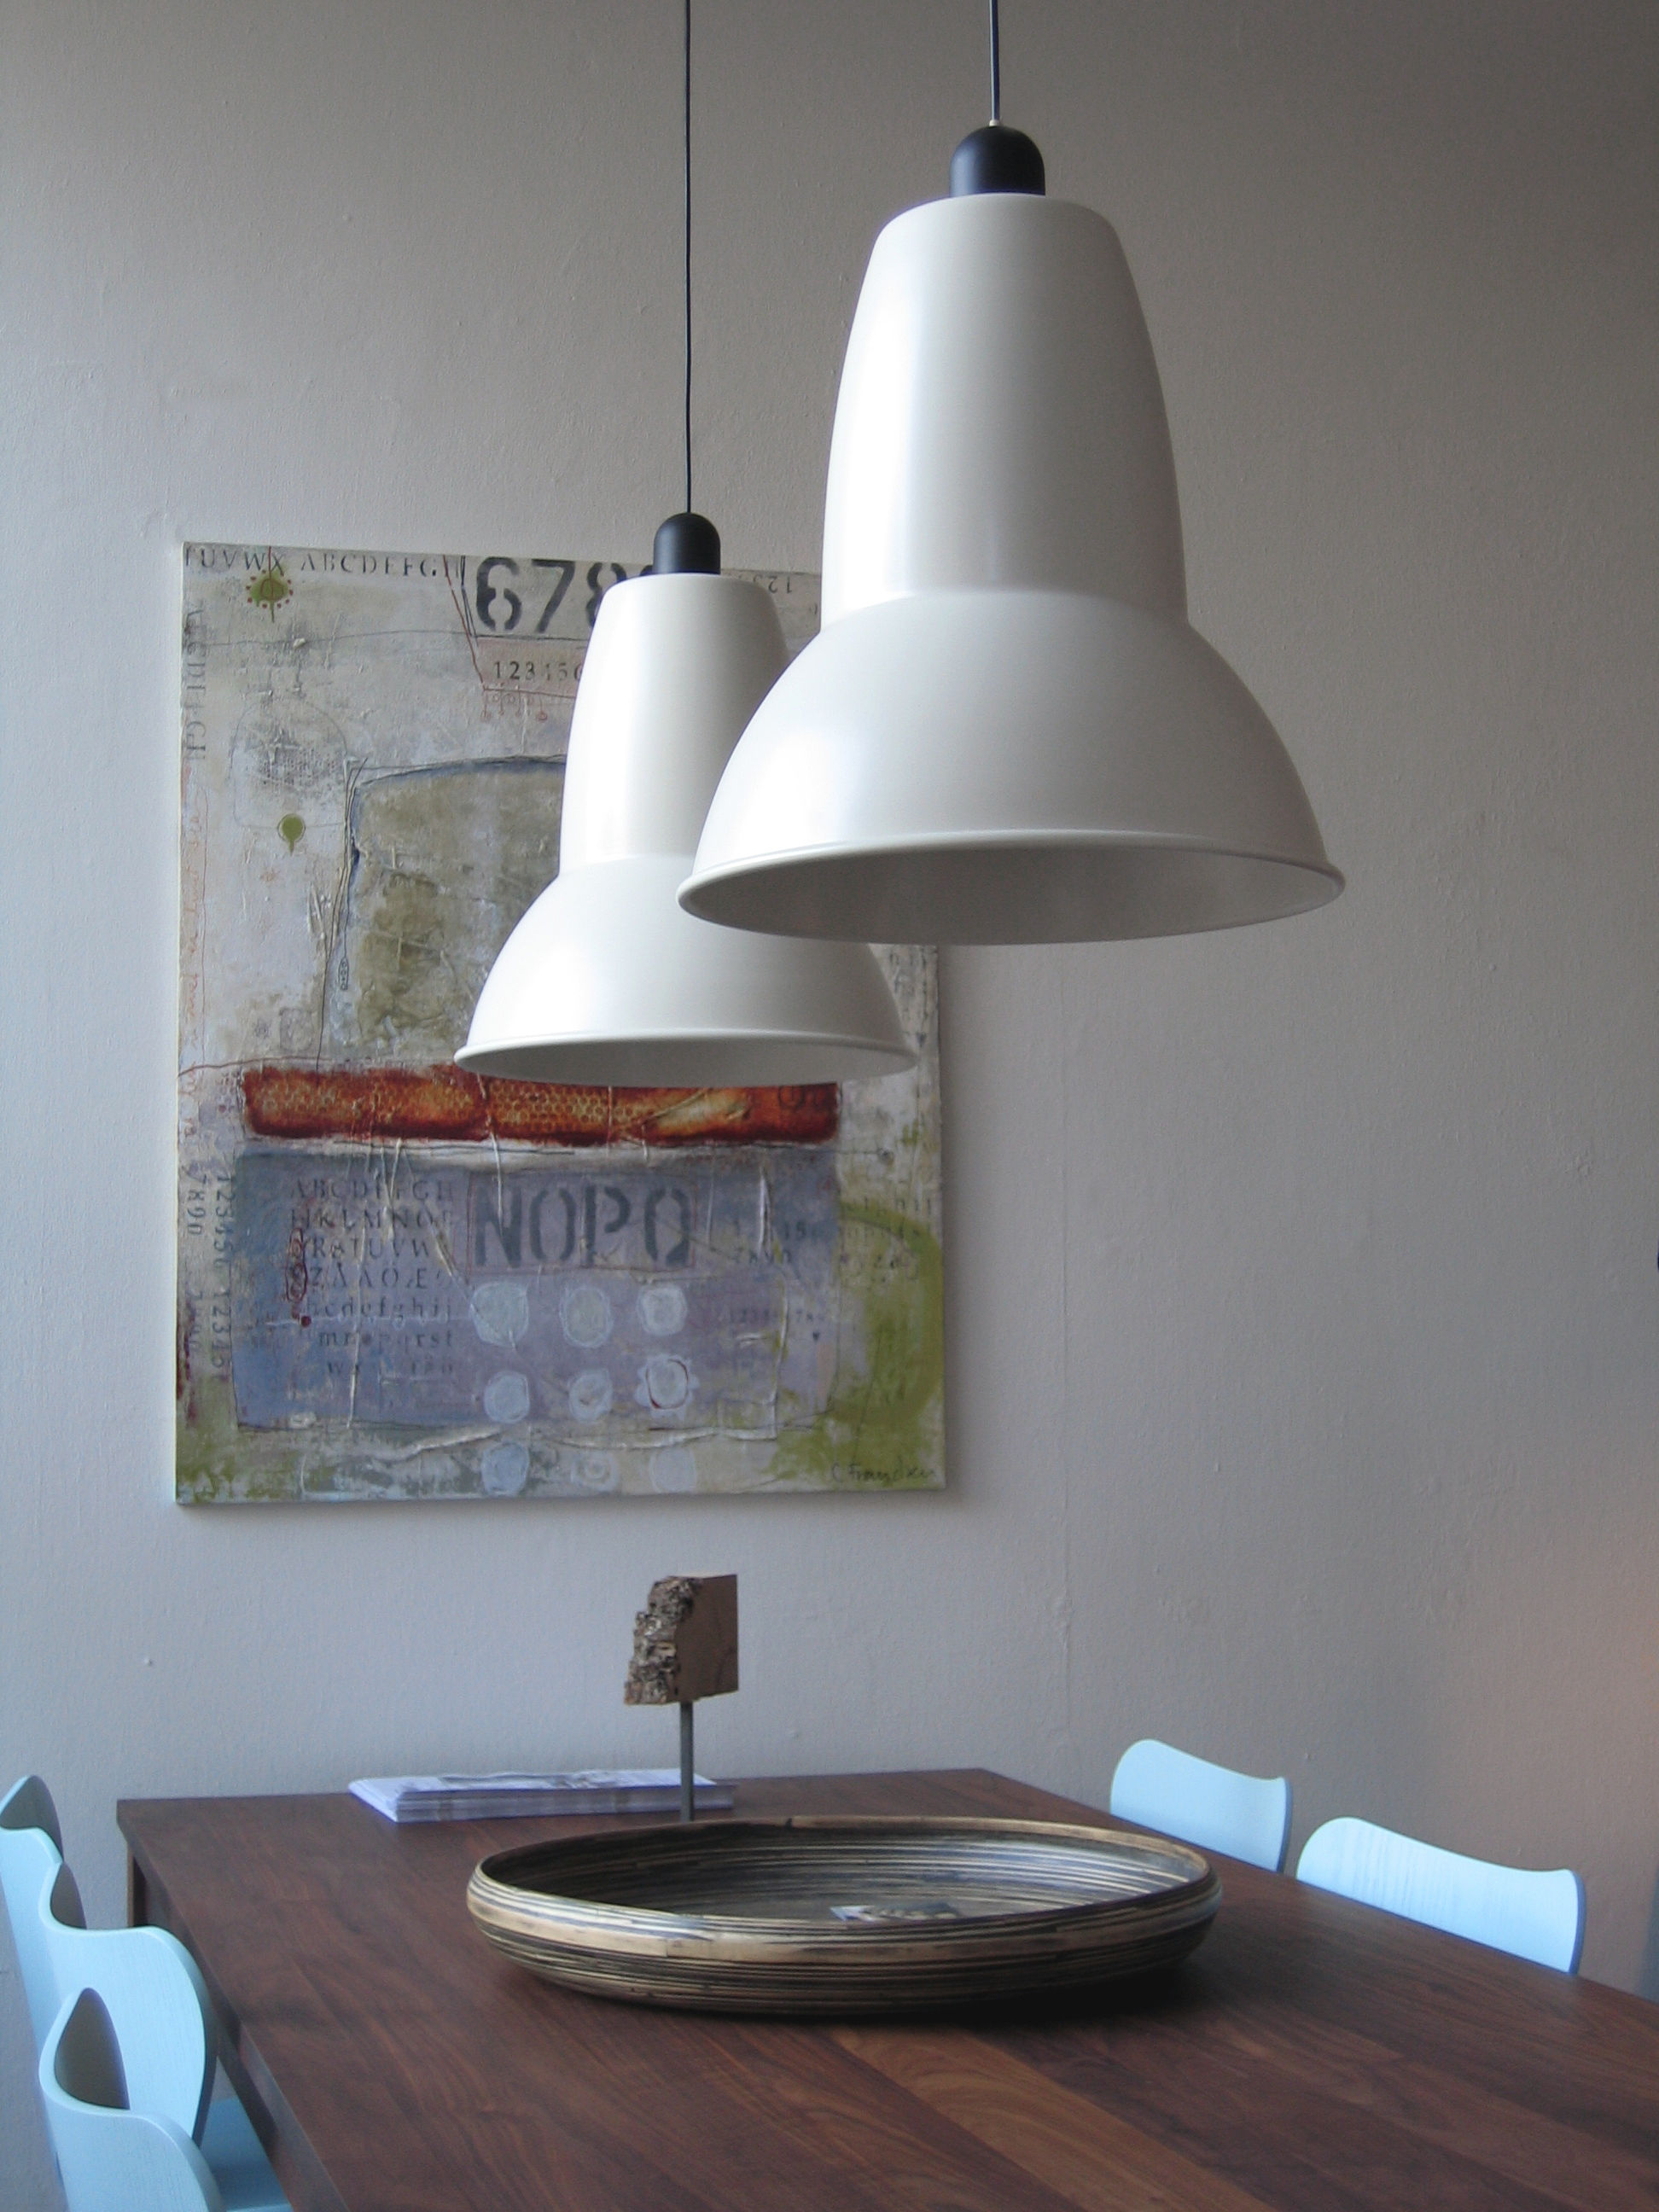 Giant 1227 pendant h 565 cm cobalt blue by anglepoise aloadofball Gallery